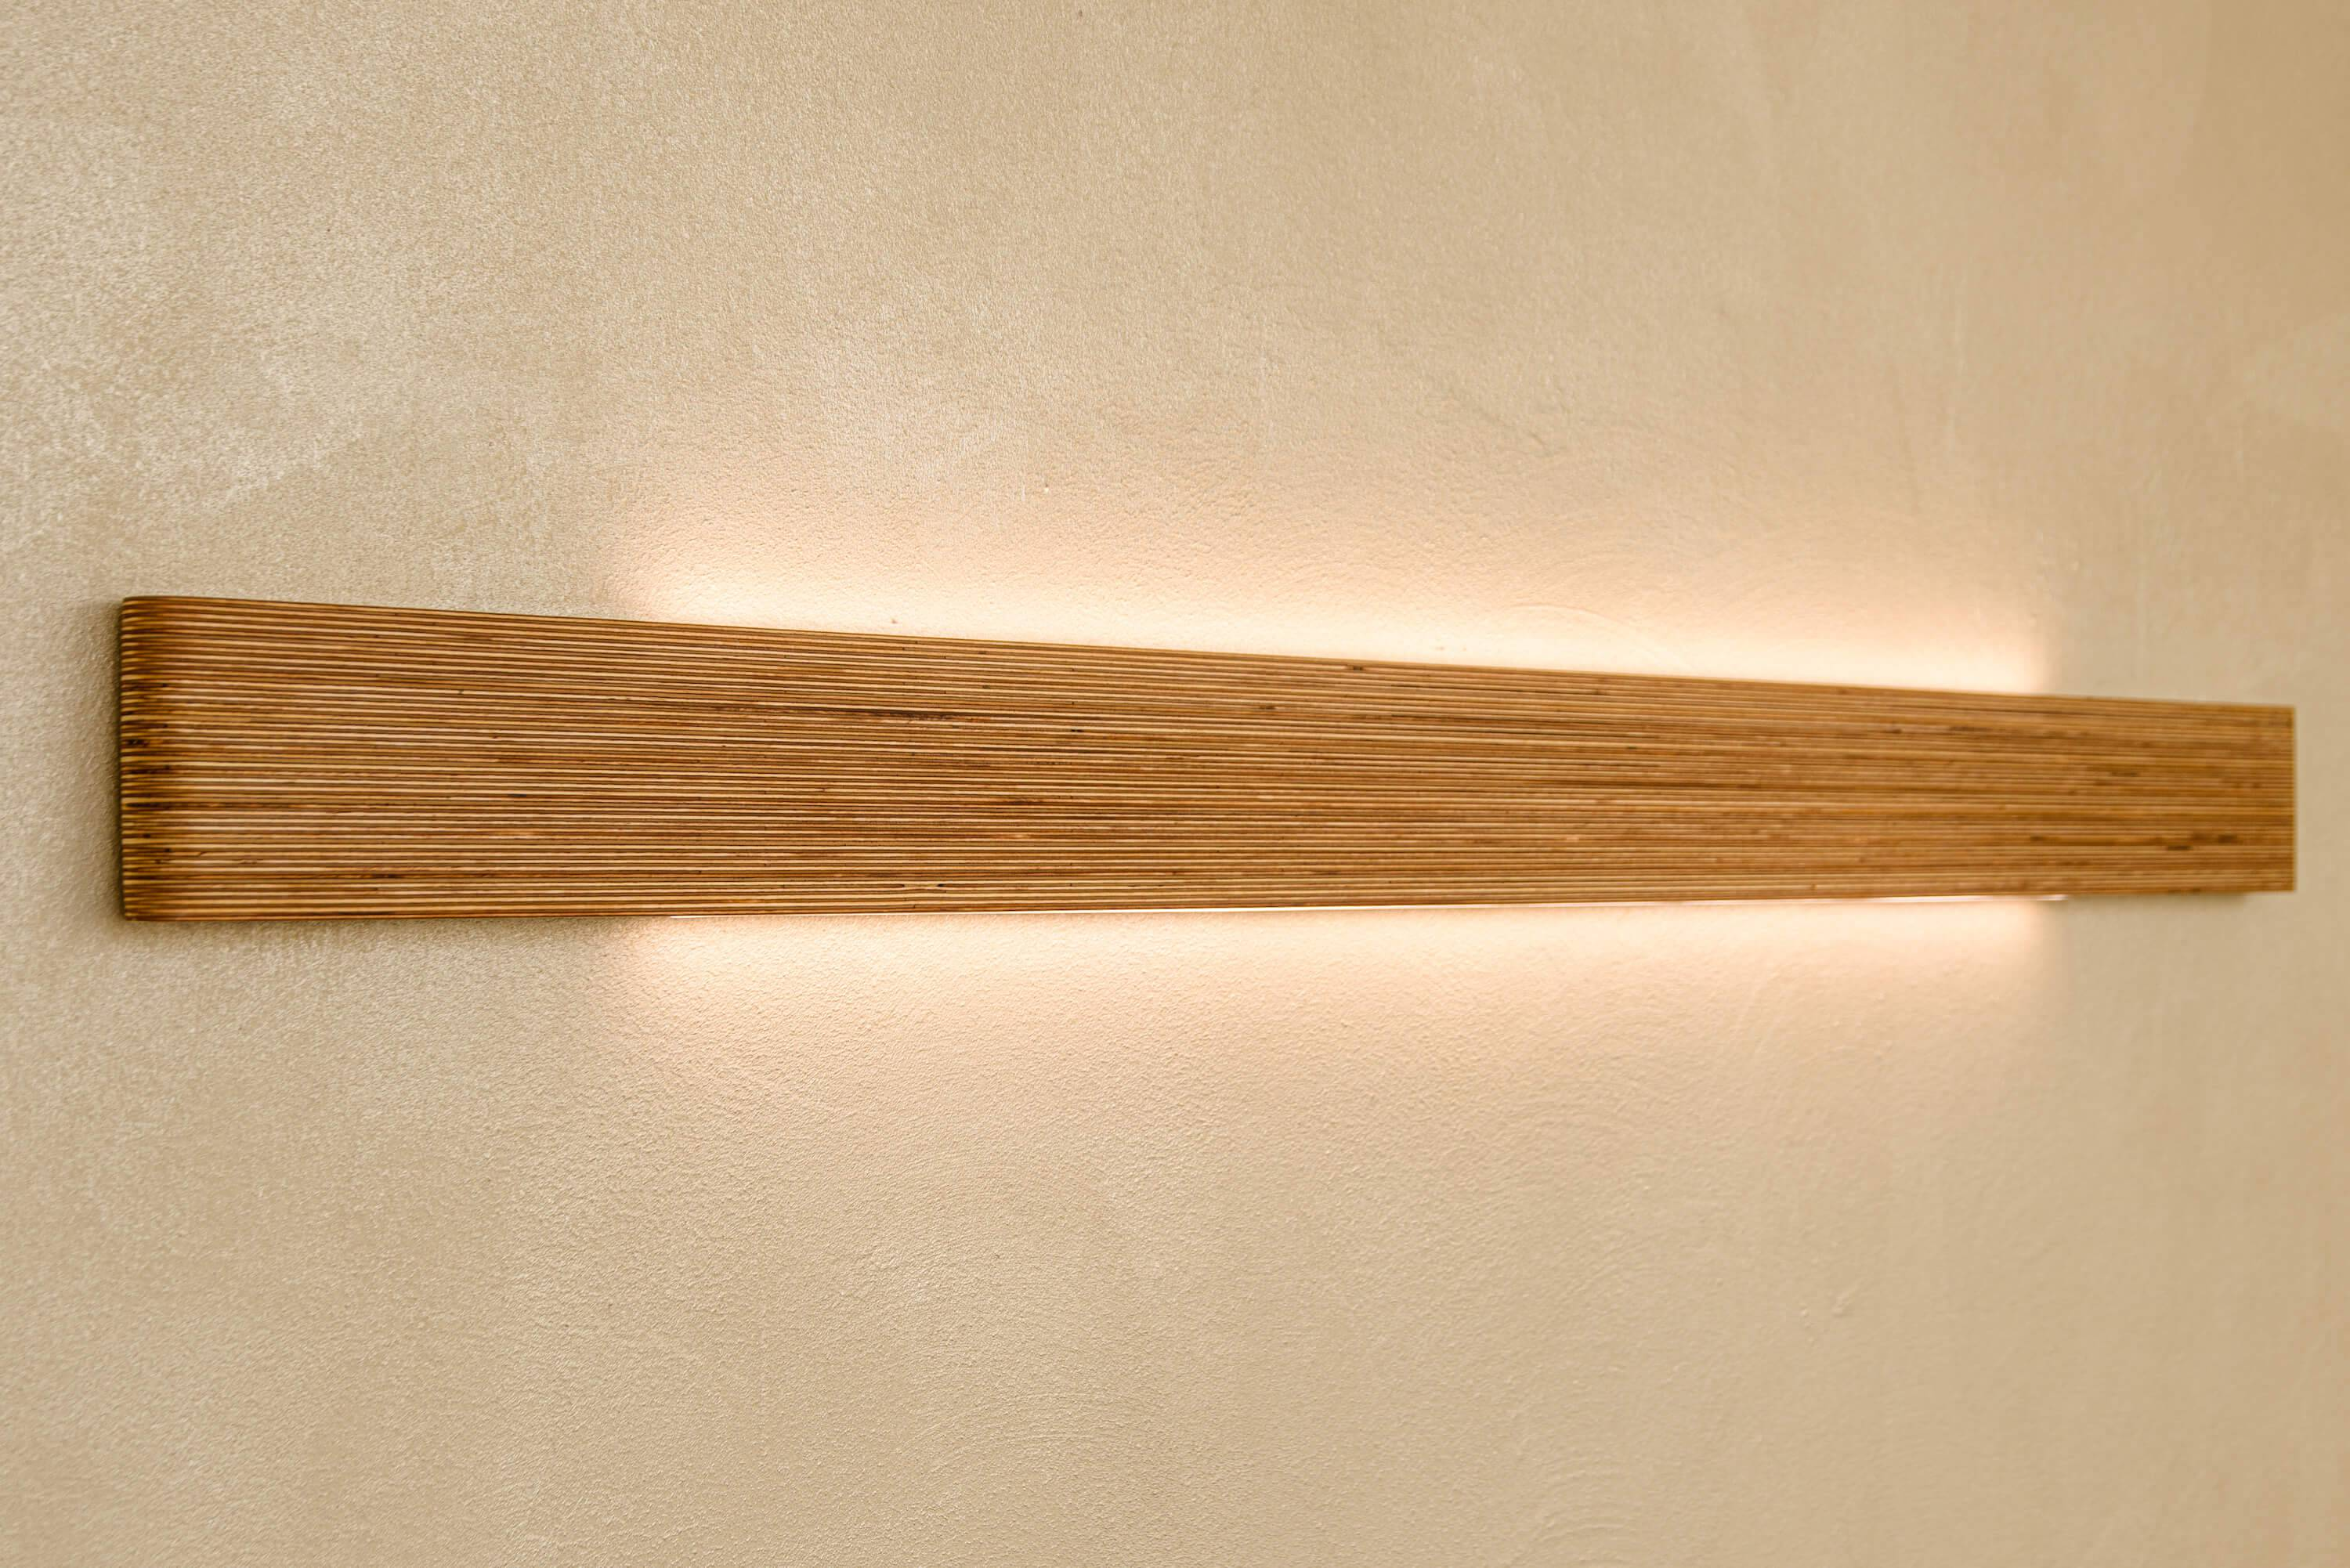 Wall lamp Stripe set of 3pcs - Handcrafted design Wall lamps